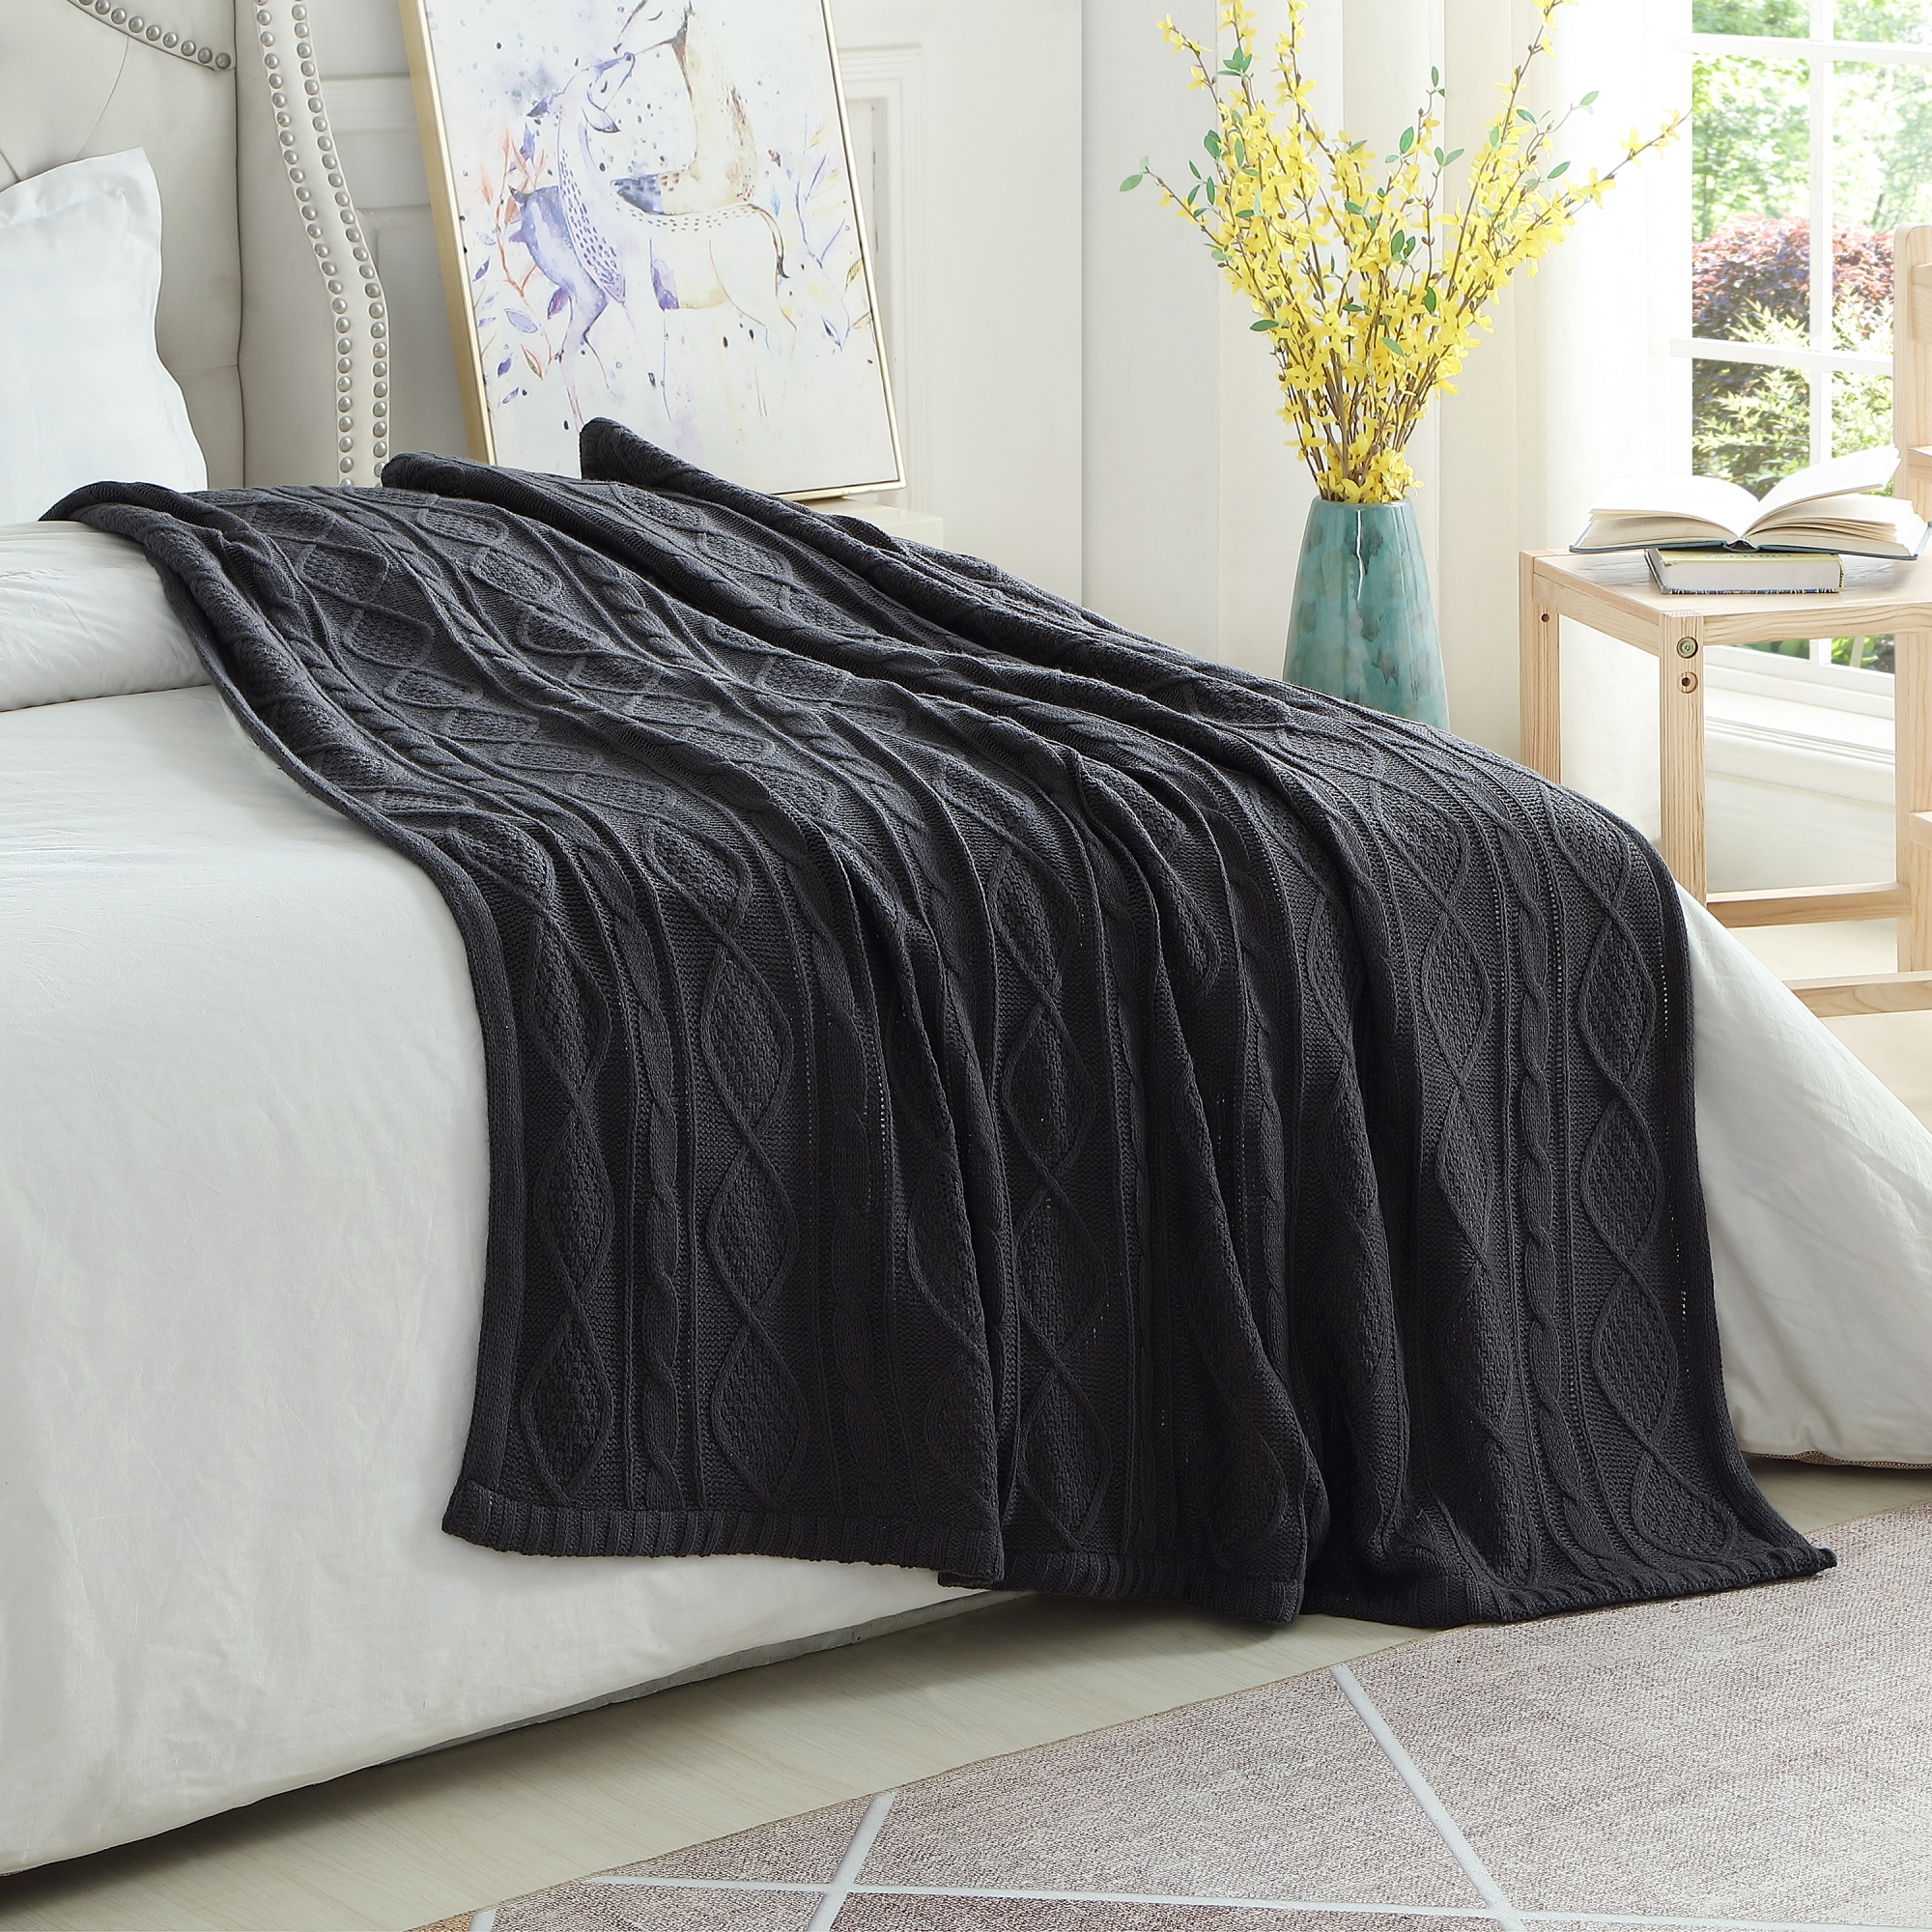 Cozy Tyme Dark Grey Front: 100% Acrylic, Back: 100% Polyester Throw Reverse Faux Rabbit Fur Cozy